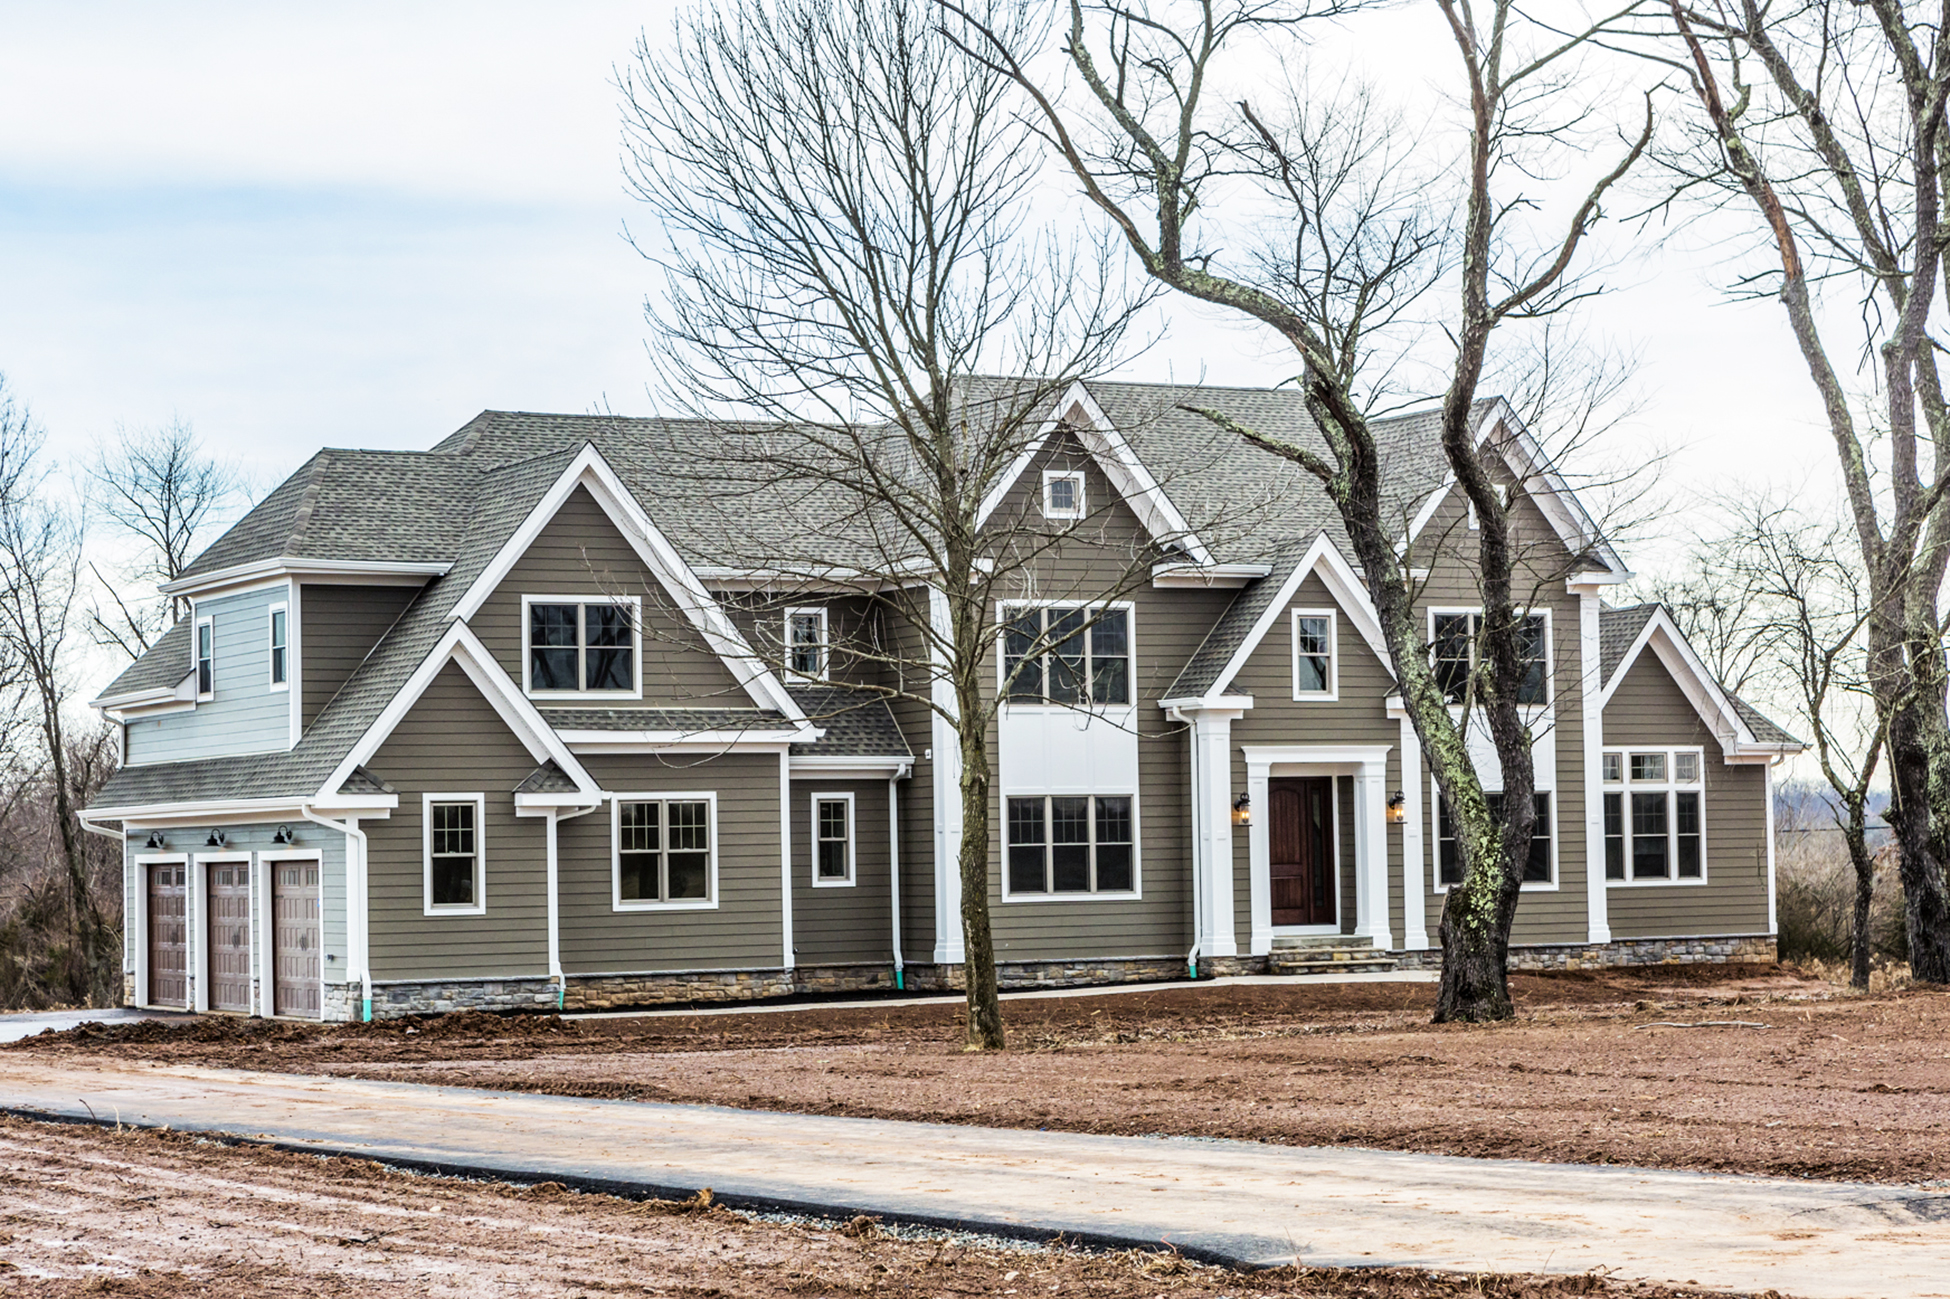 Частный односемейный дом для того Продажа на All New Construction By Rockwell Custom Homes - Hopewell Township 1 Silvers Court Pennington, 08534 Соединенные Штаты